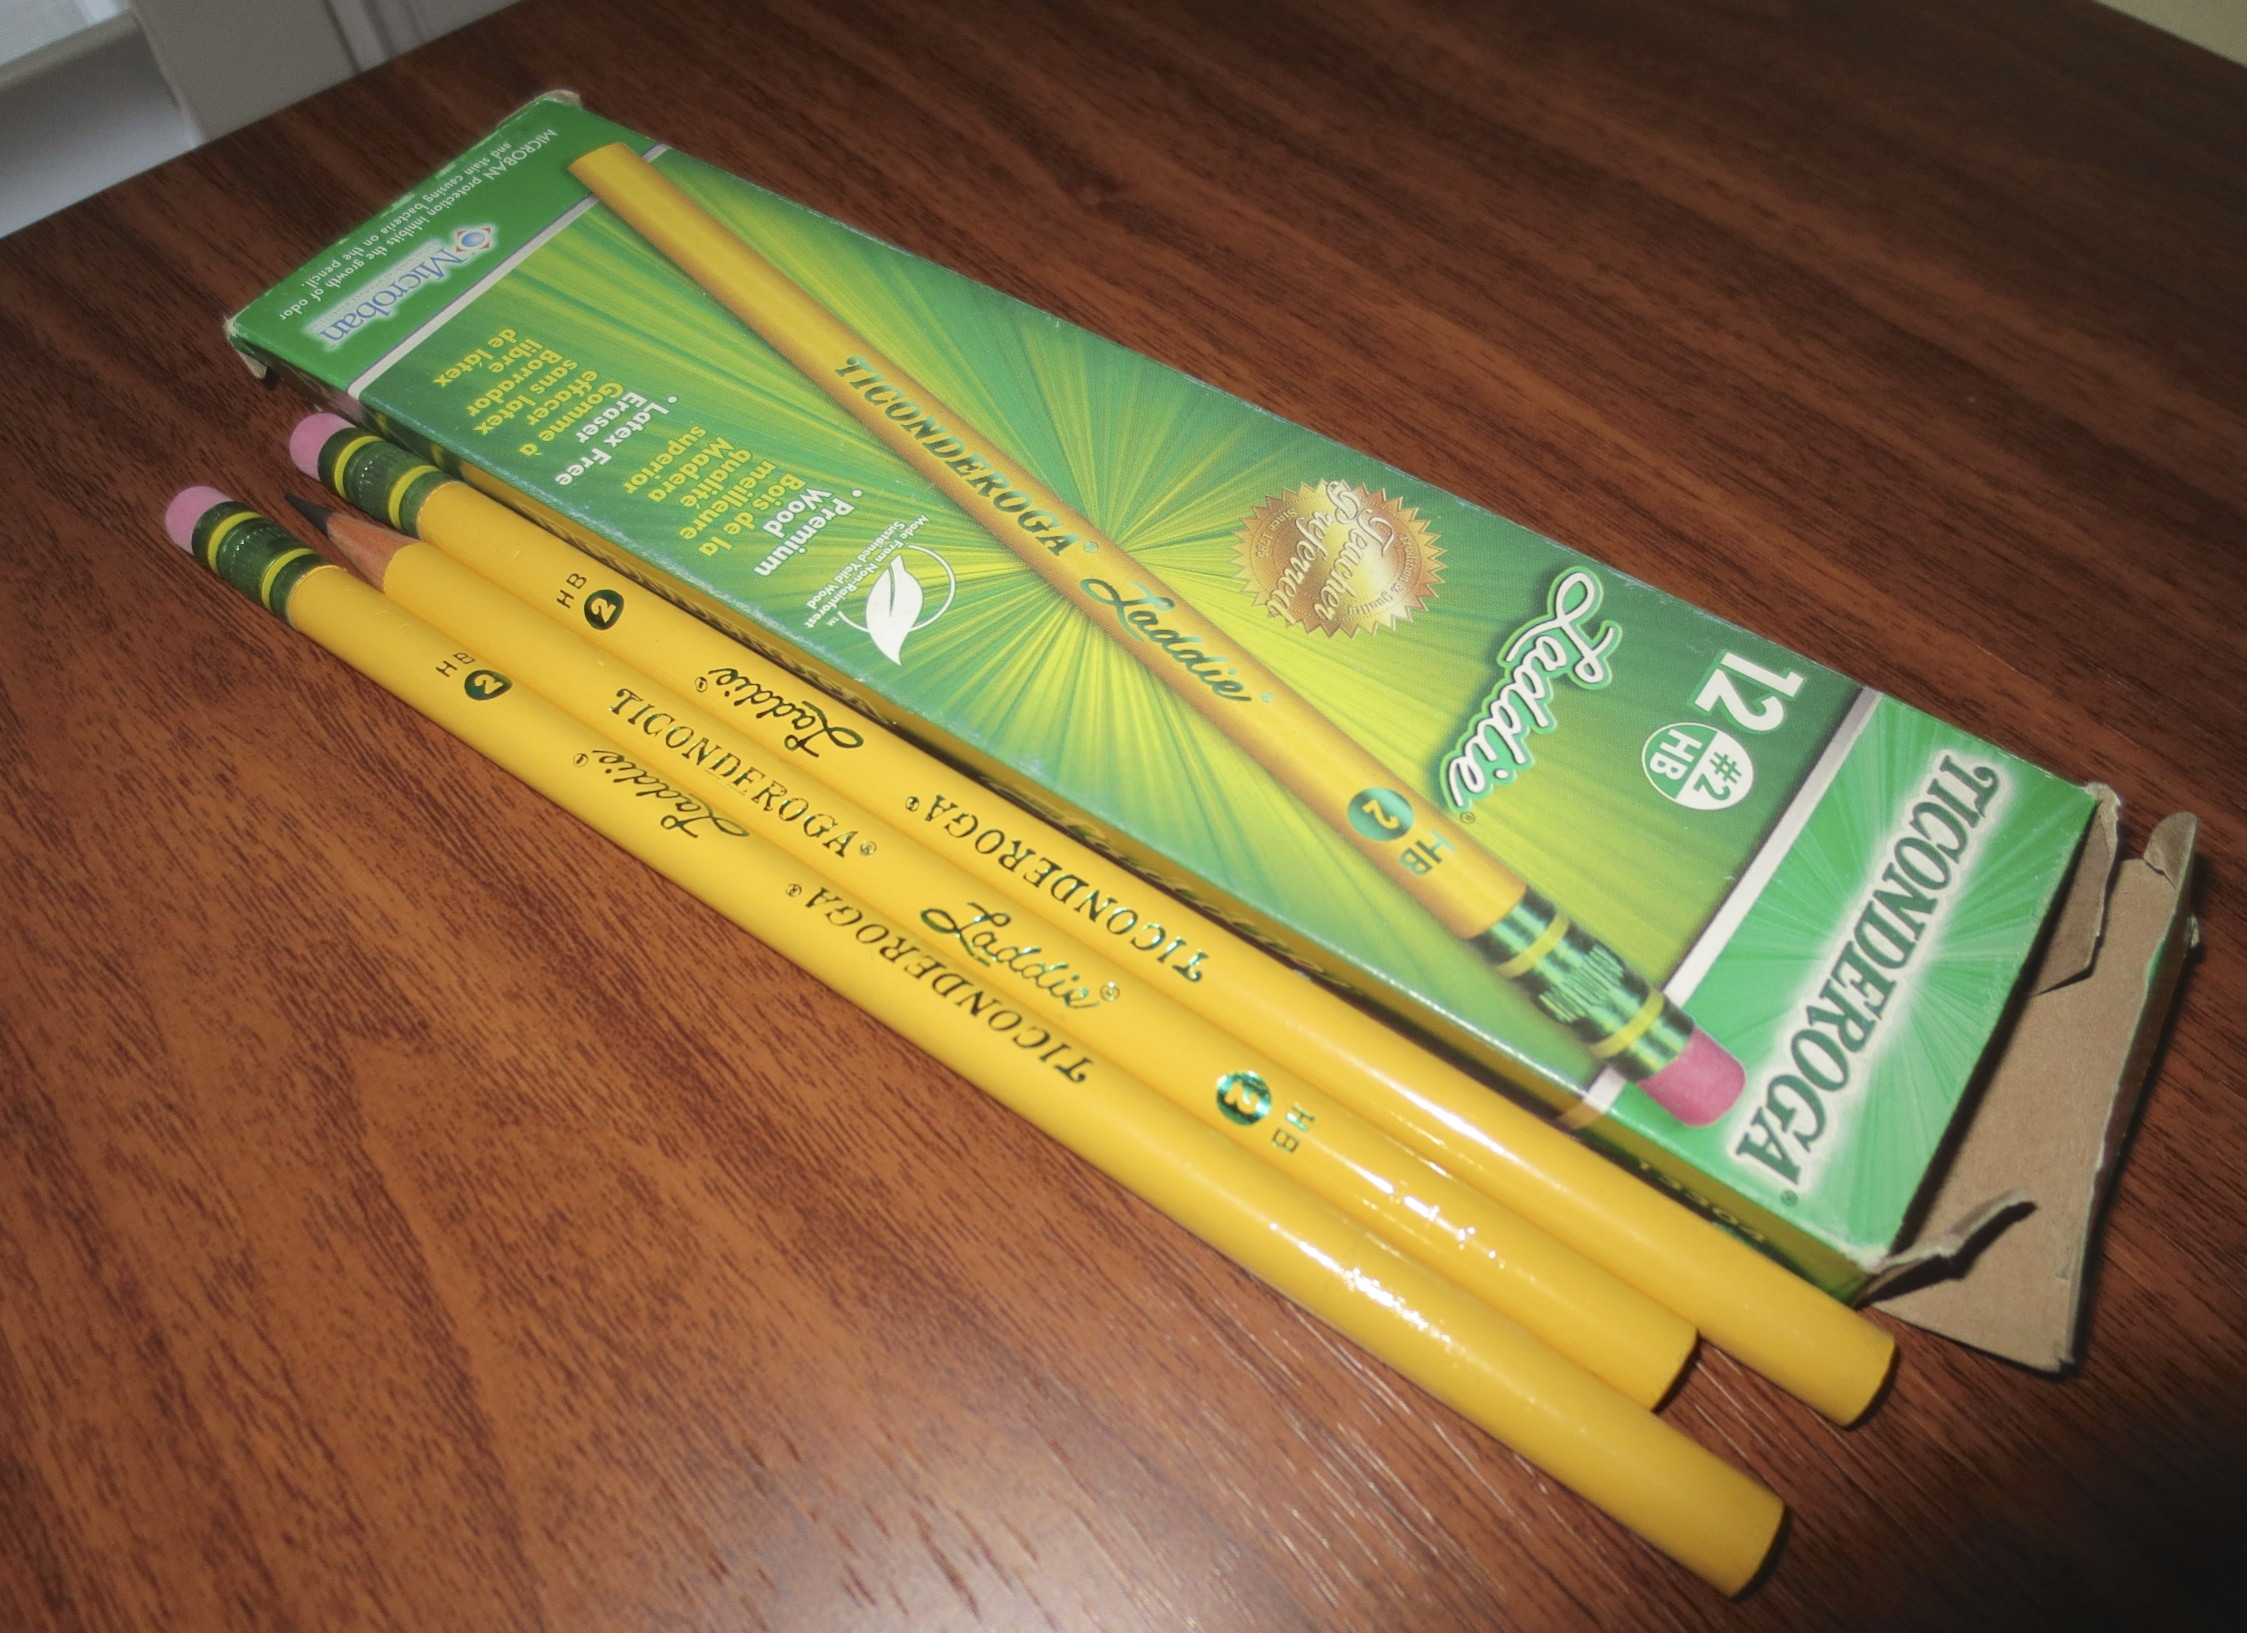 A fresh dozen of Ticonderoga Laddie mini-jumbo pencils with erasers, plus my lone eraserless version.